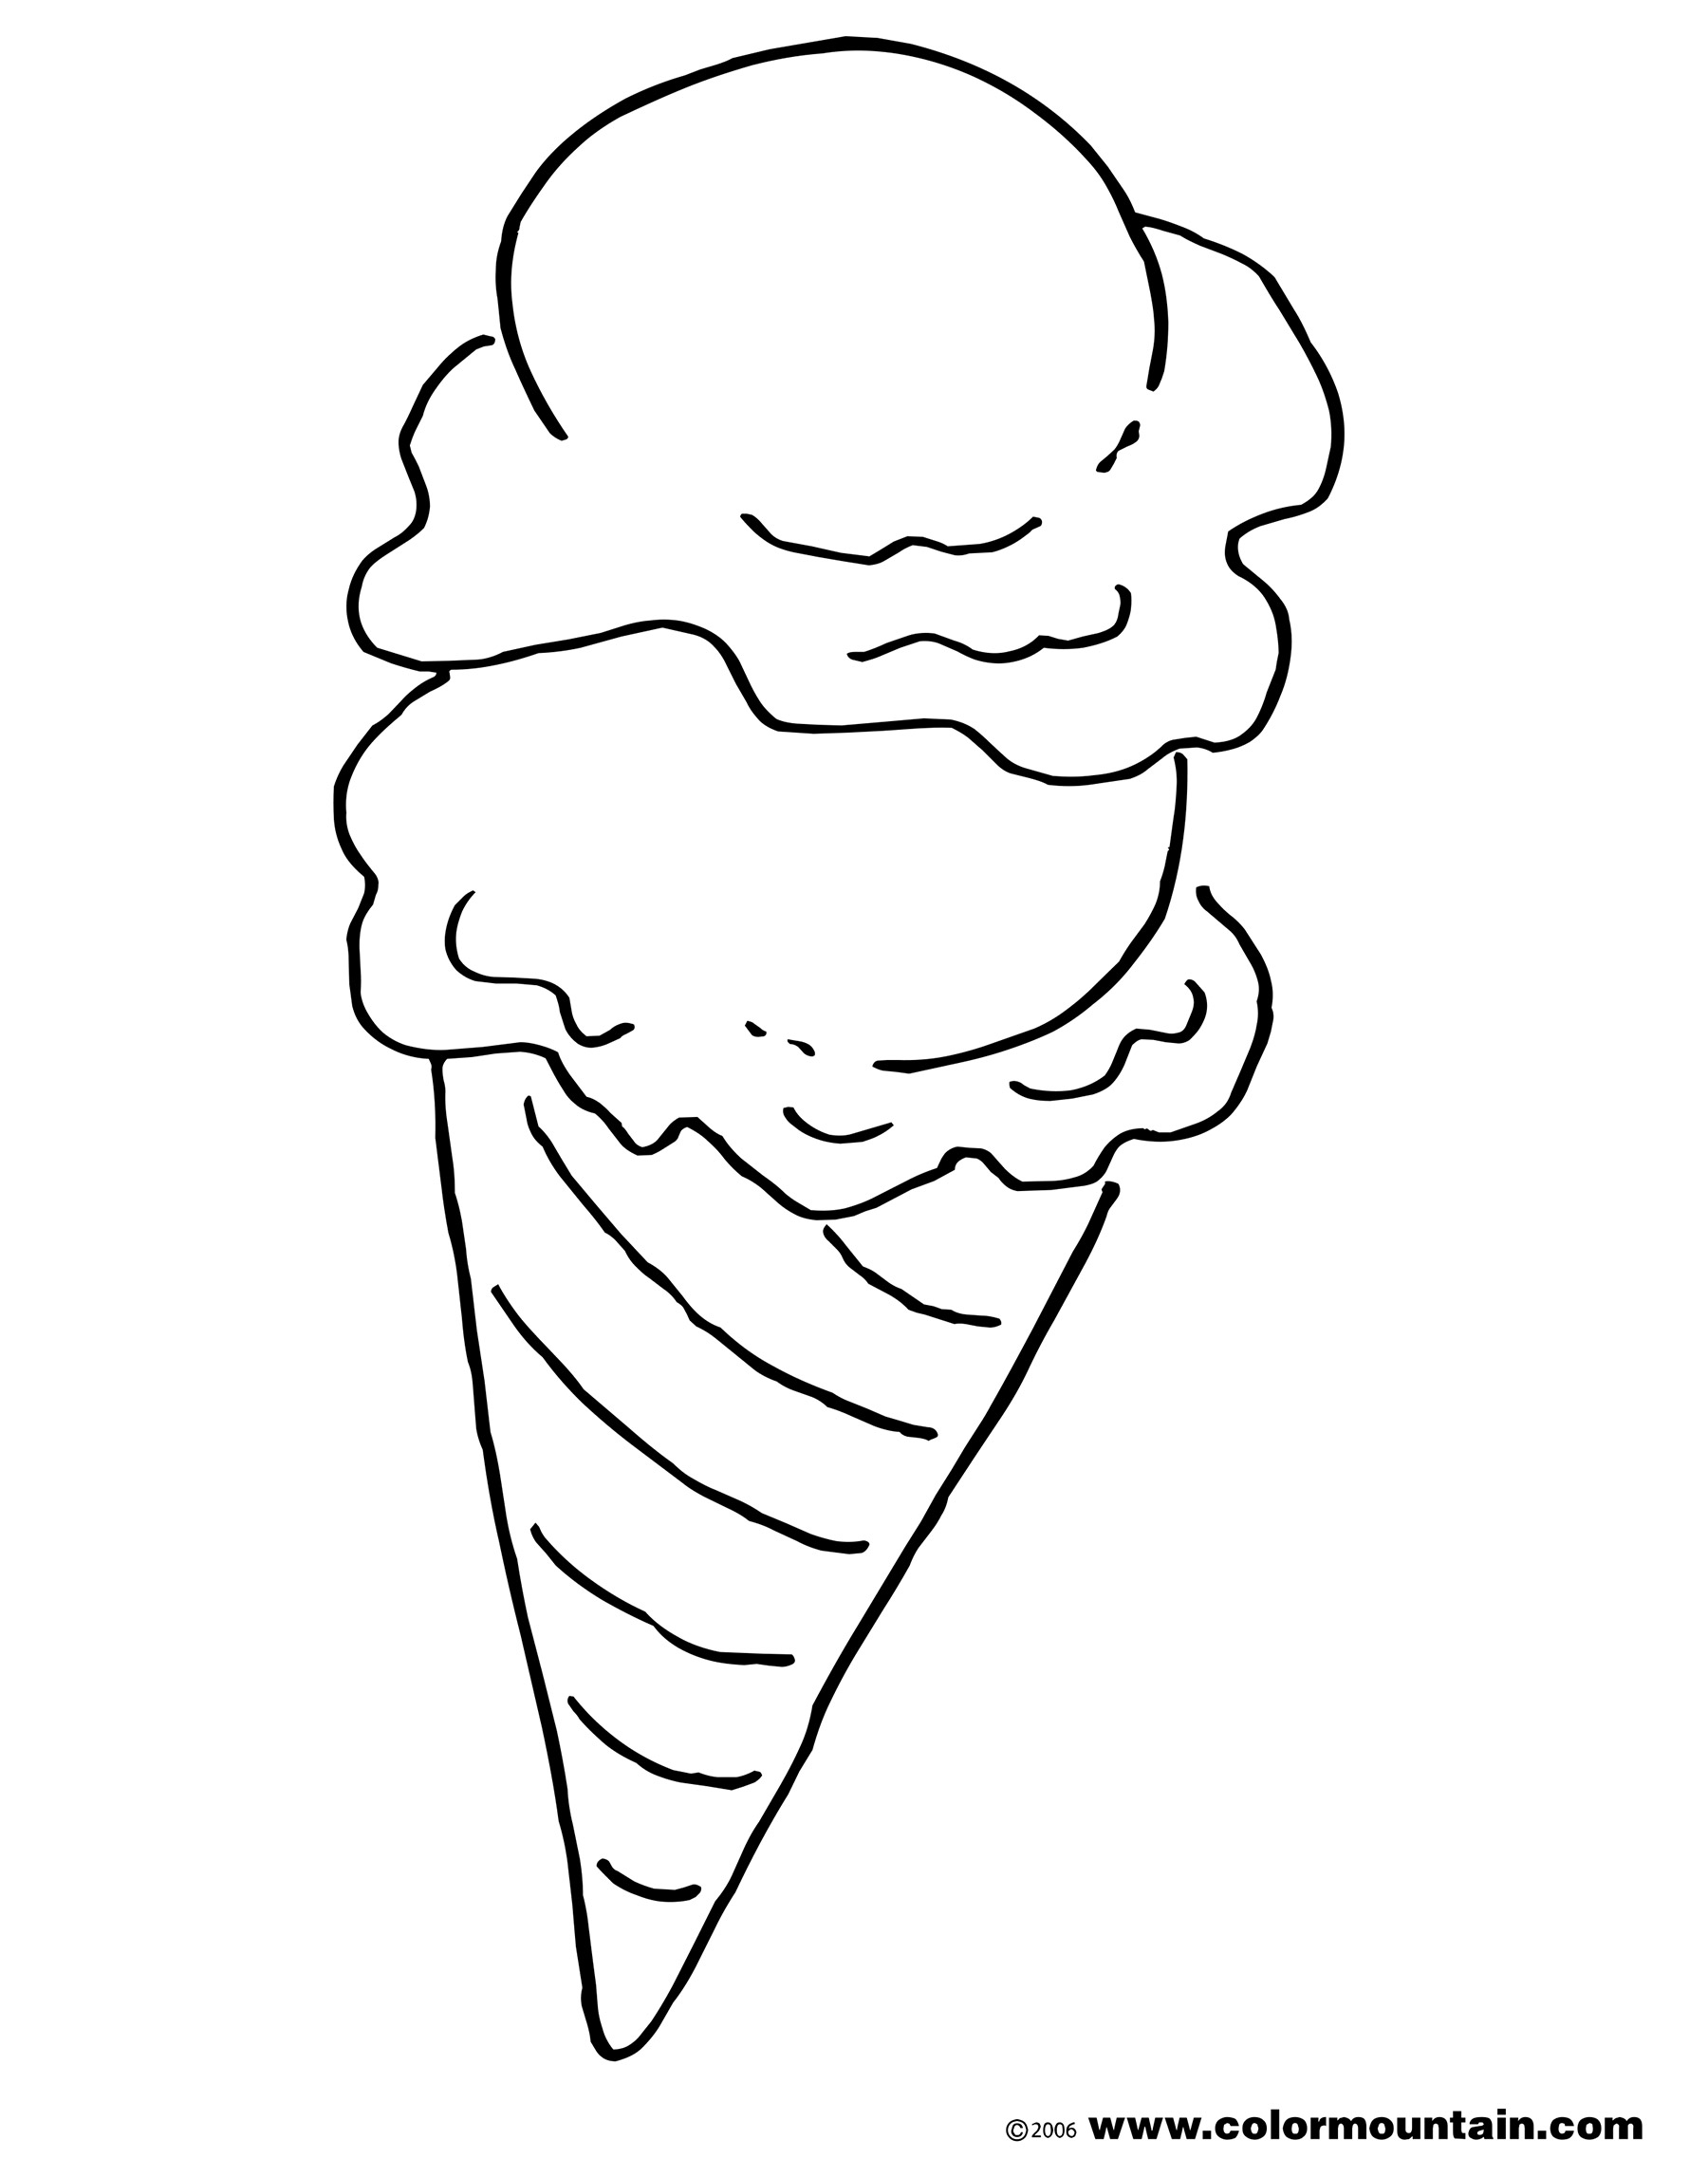 graphic about Printable Ice Cream Cones known as Icecream Cone Drawing at  No cost for unique